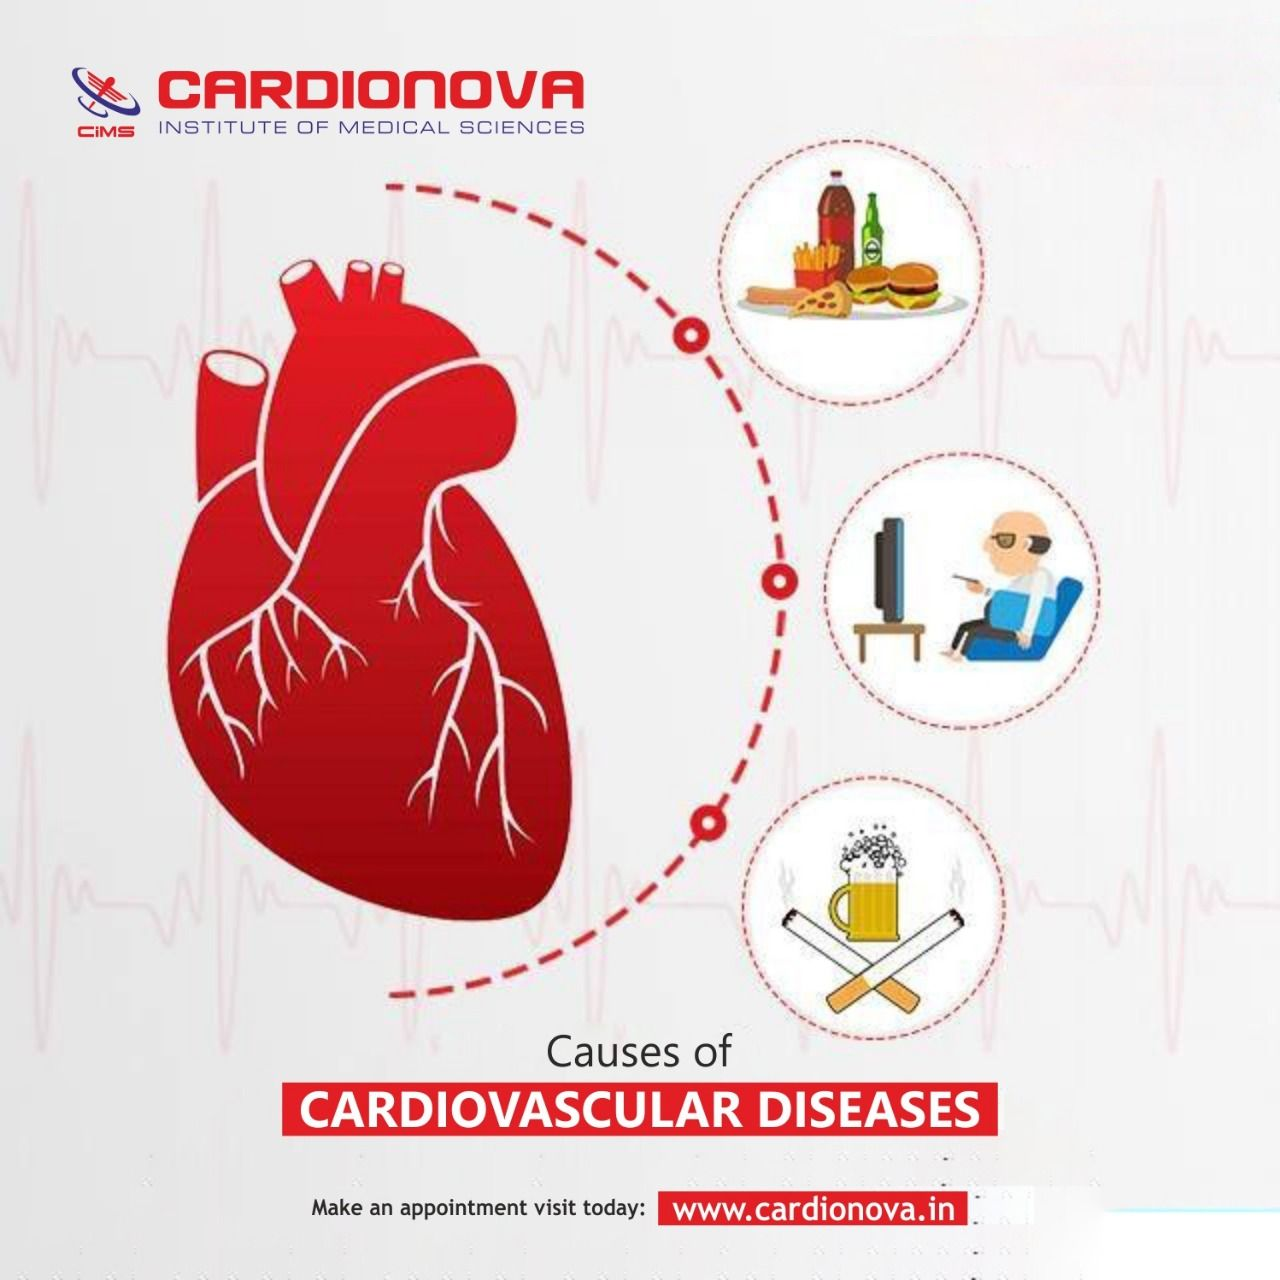 What Are The Top Causes Of Cardiovascular Diseases